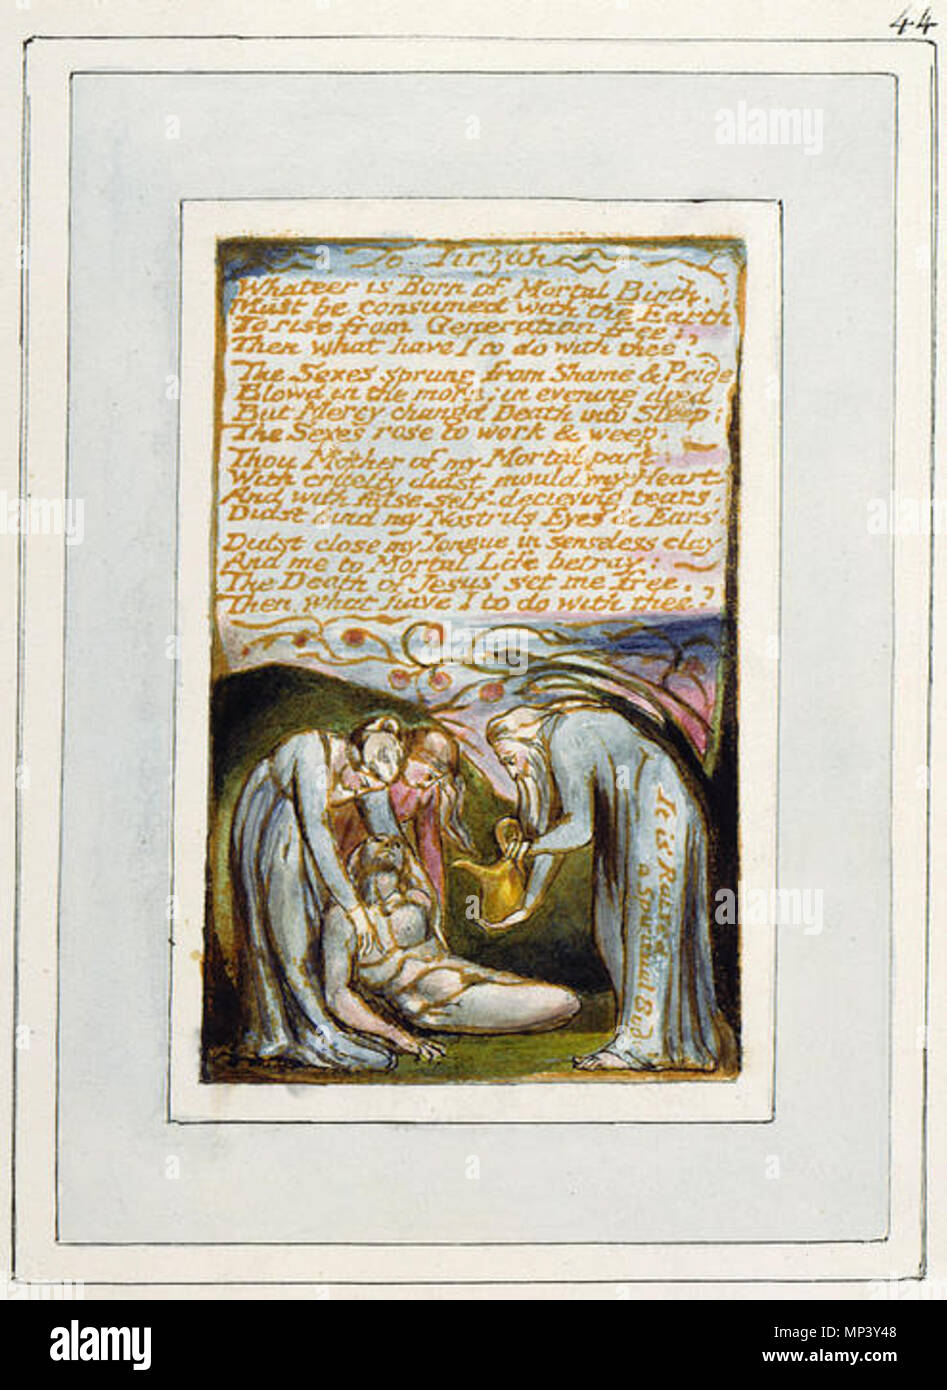 . English: Songs of Innocence and of Experience, copy V, 1821 (Morgan Library and Museum) object 44-52 To Tirzah . 4 April 2005, 06:09:05.   William Blake (1757–1827)   Alternative names W. Blake; Uil'iam Bleik  Description British painter, poet, writer, theologian, collector and engraver  Date of birth/death 28 November 1757 12 August 1827  Location of birth/death Broadwick Street Charing Cross  Work location London  Authority control  : Q41513 VIAF:54144439 ISNI:0000 0001 2096 135X ULAN:500012489 LCCN:n78095331 NLA:35019221 WorldCat    Category:William Blake   This is a faithful ph - Stock Image